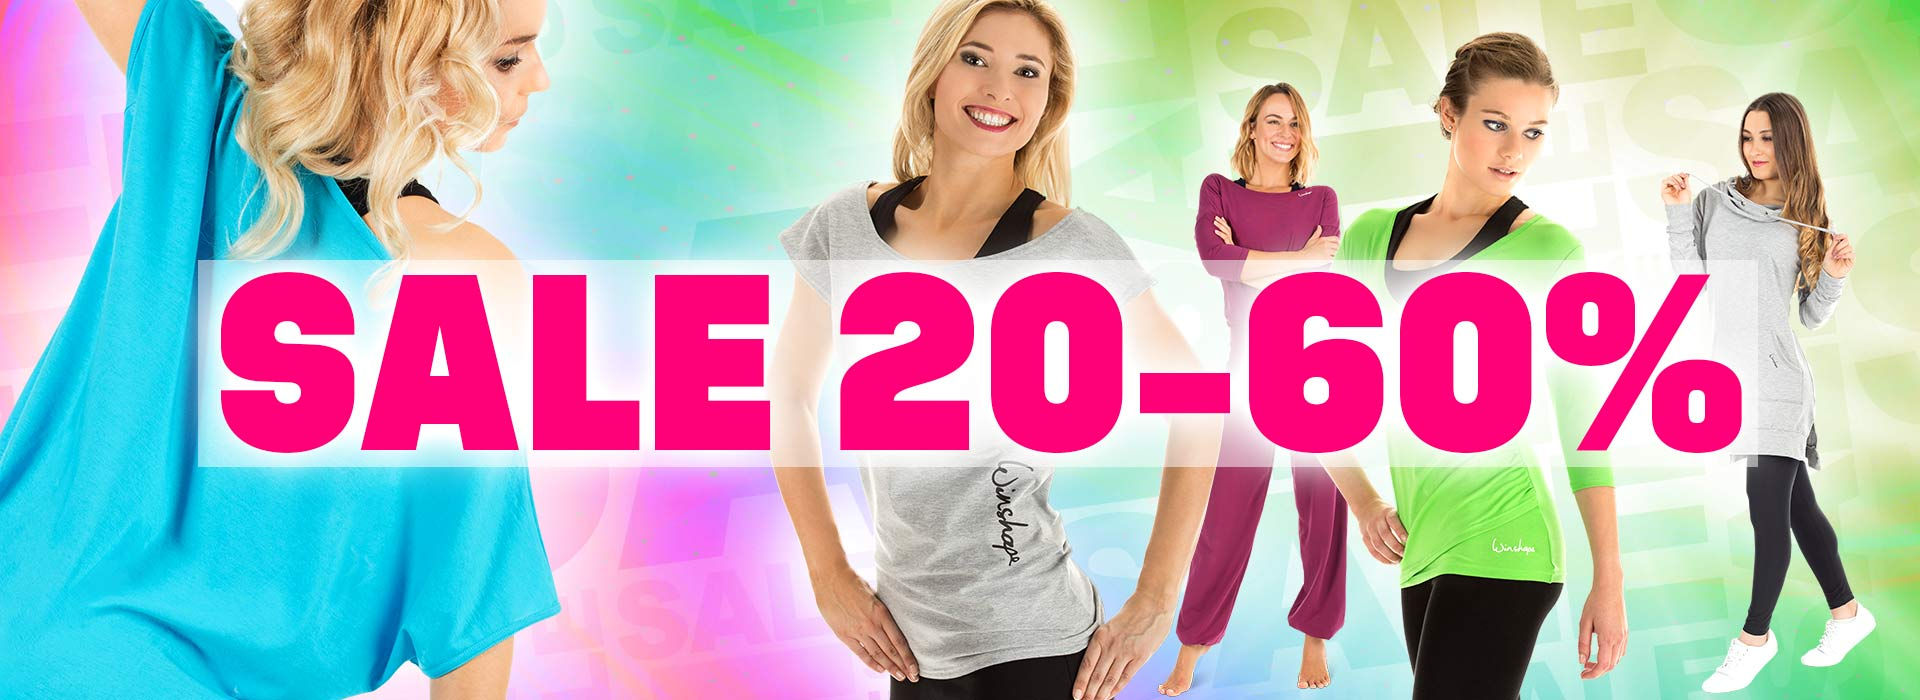 Girls just wanna have SALE! Bis 60% sparen!